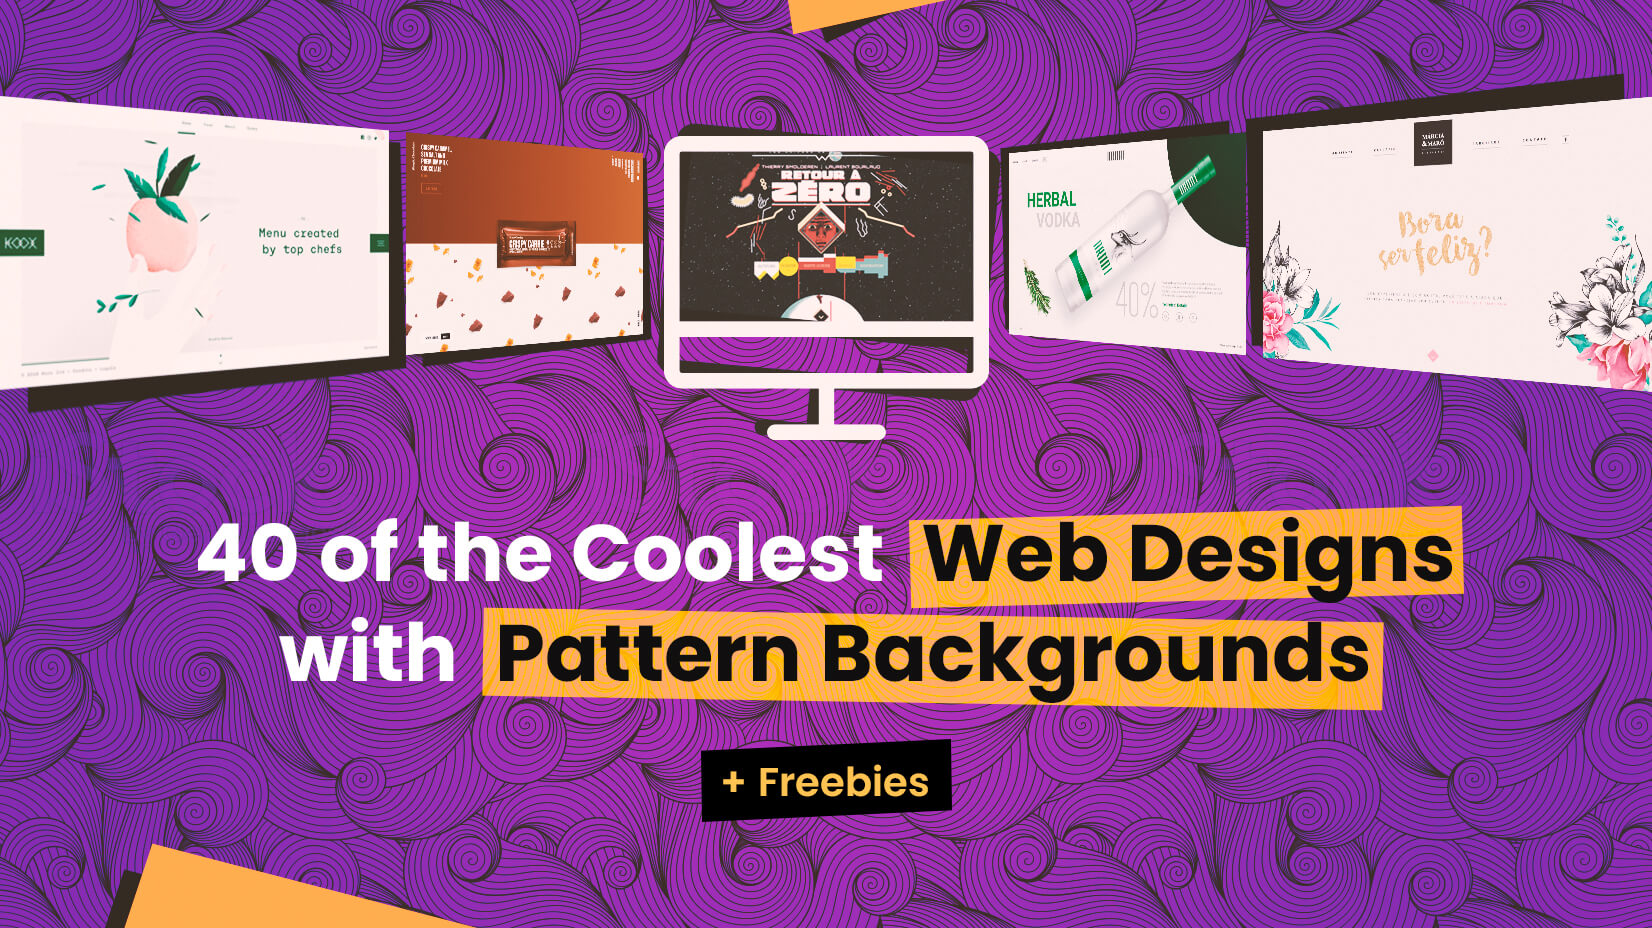 40 of the Coolest Web Designs with Pattern Backgrounds +.